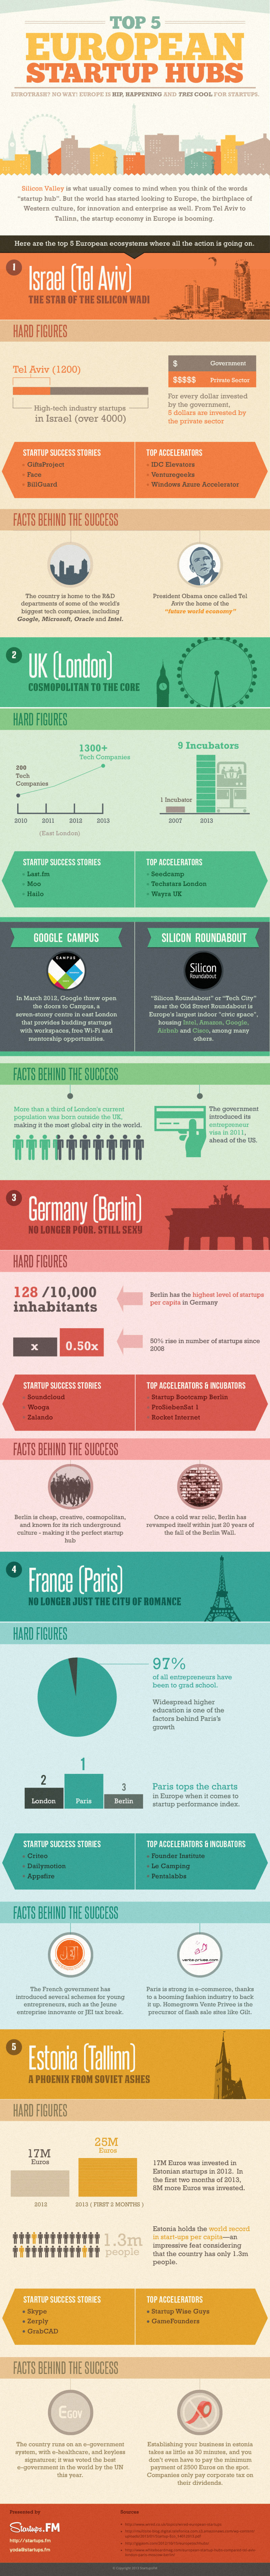 Top 5 European Start-up Hubs Infographic